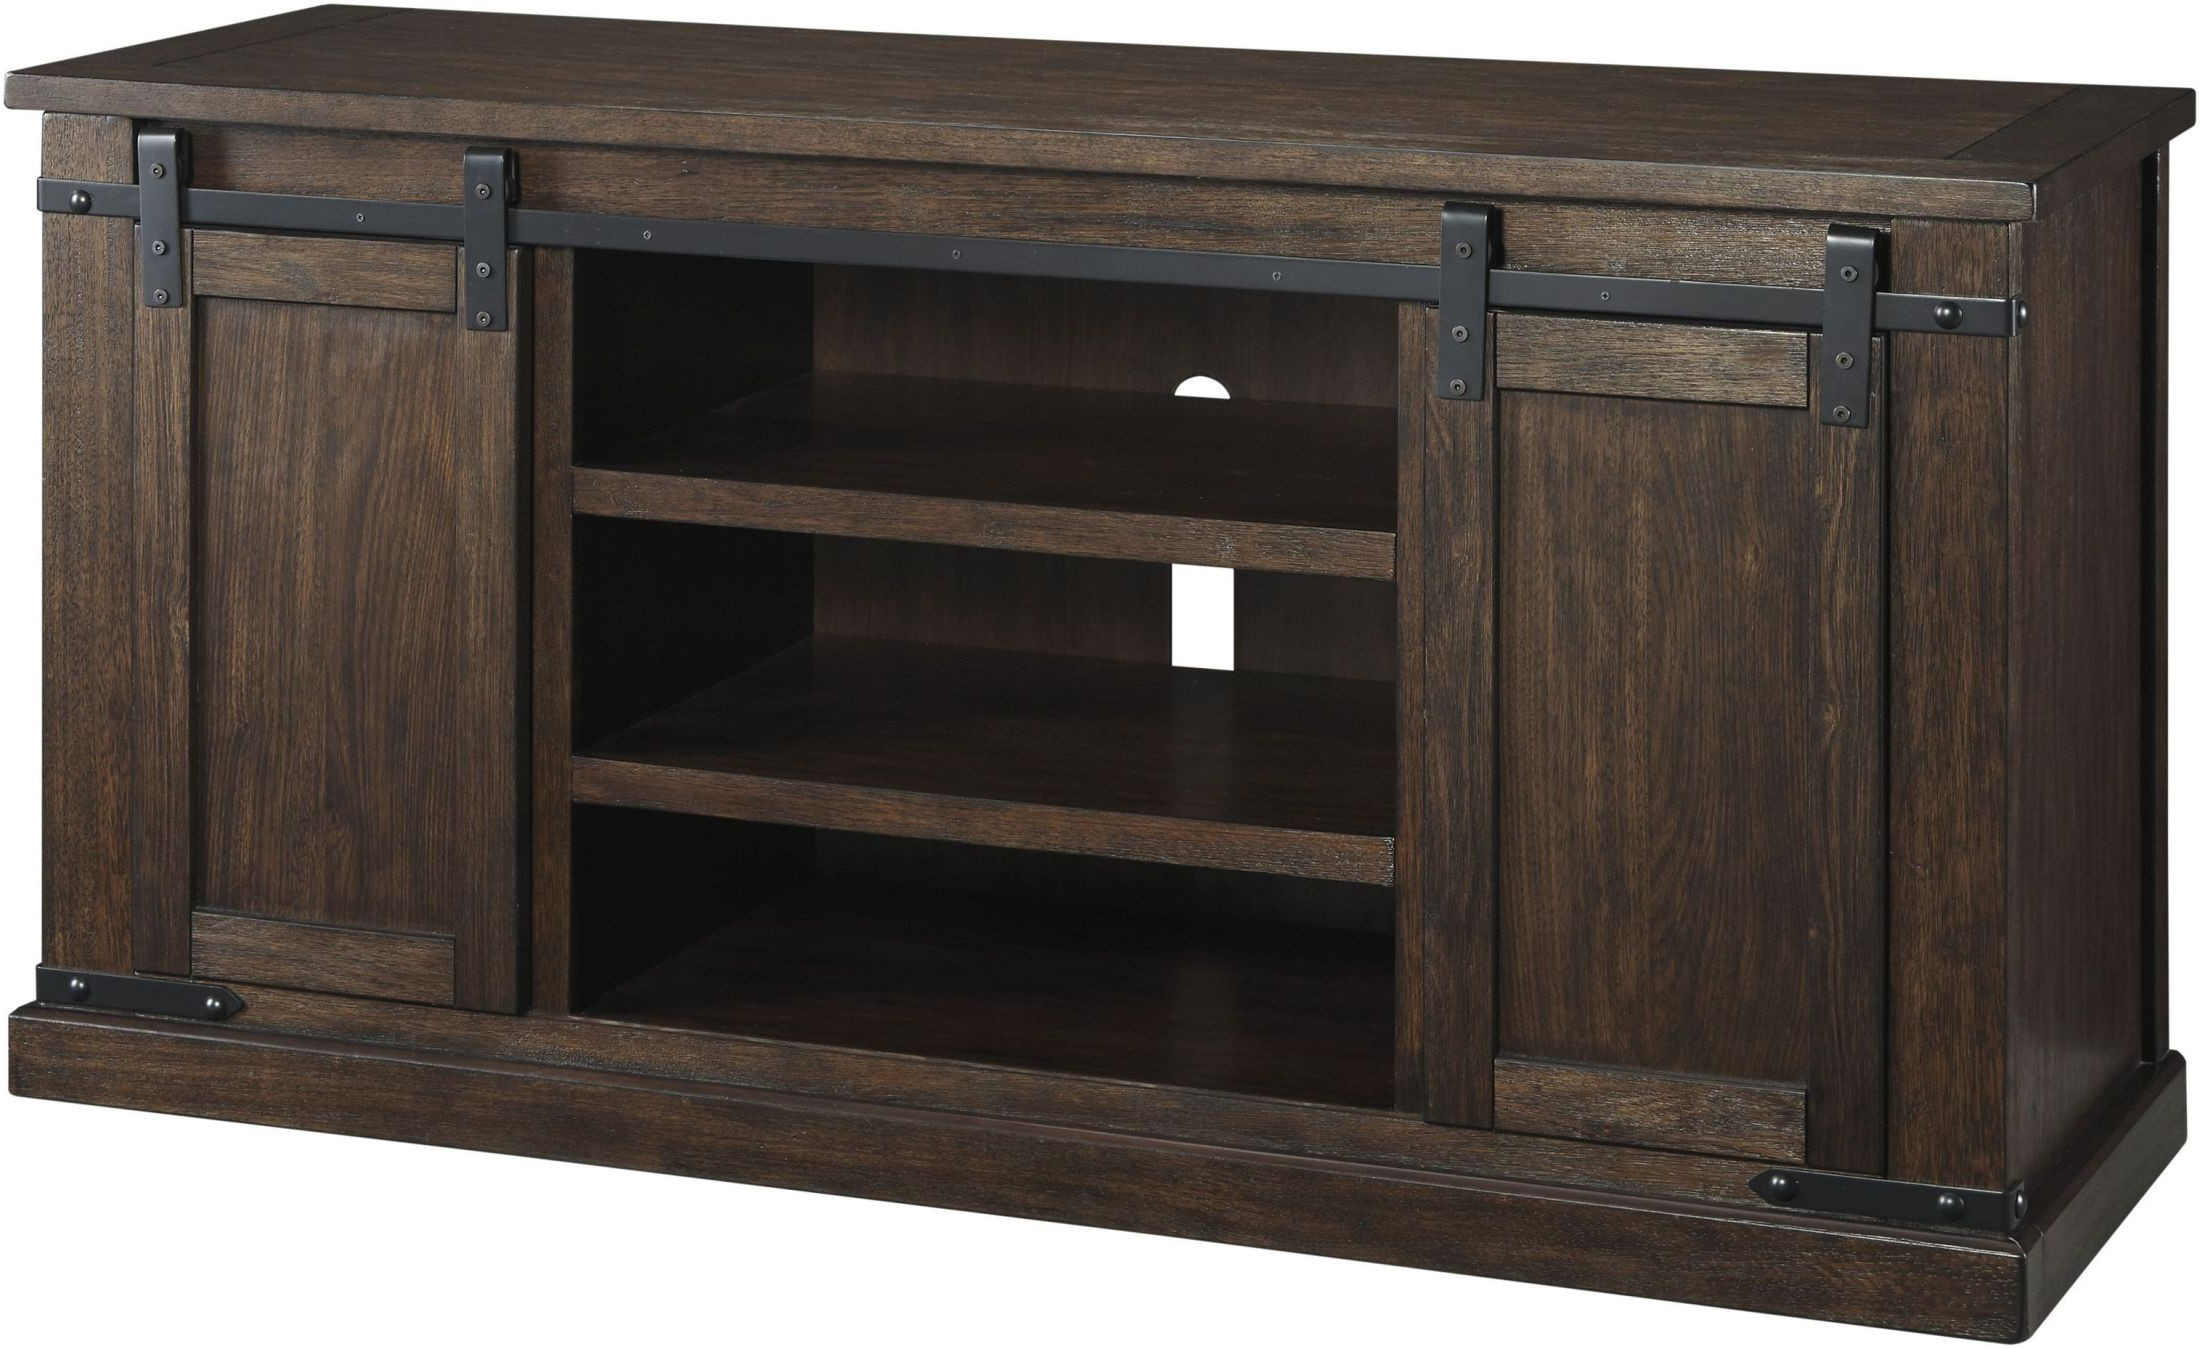 Coleman Furniture Intended For Trendy Abbot 60 Inch Tv Stands (View 6 of 20)